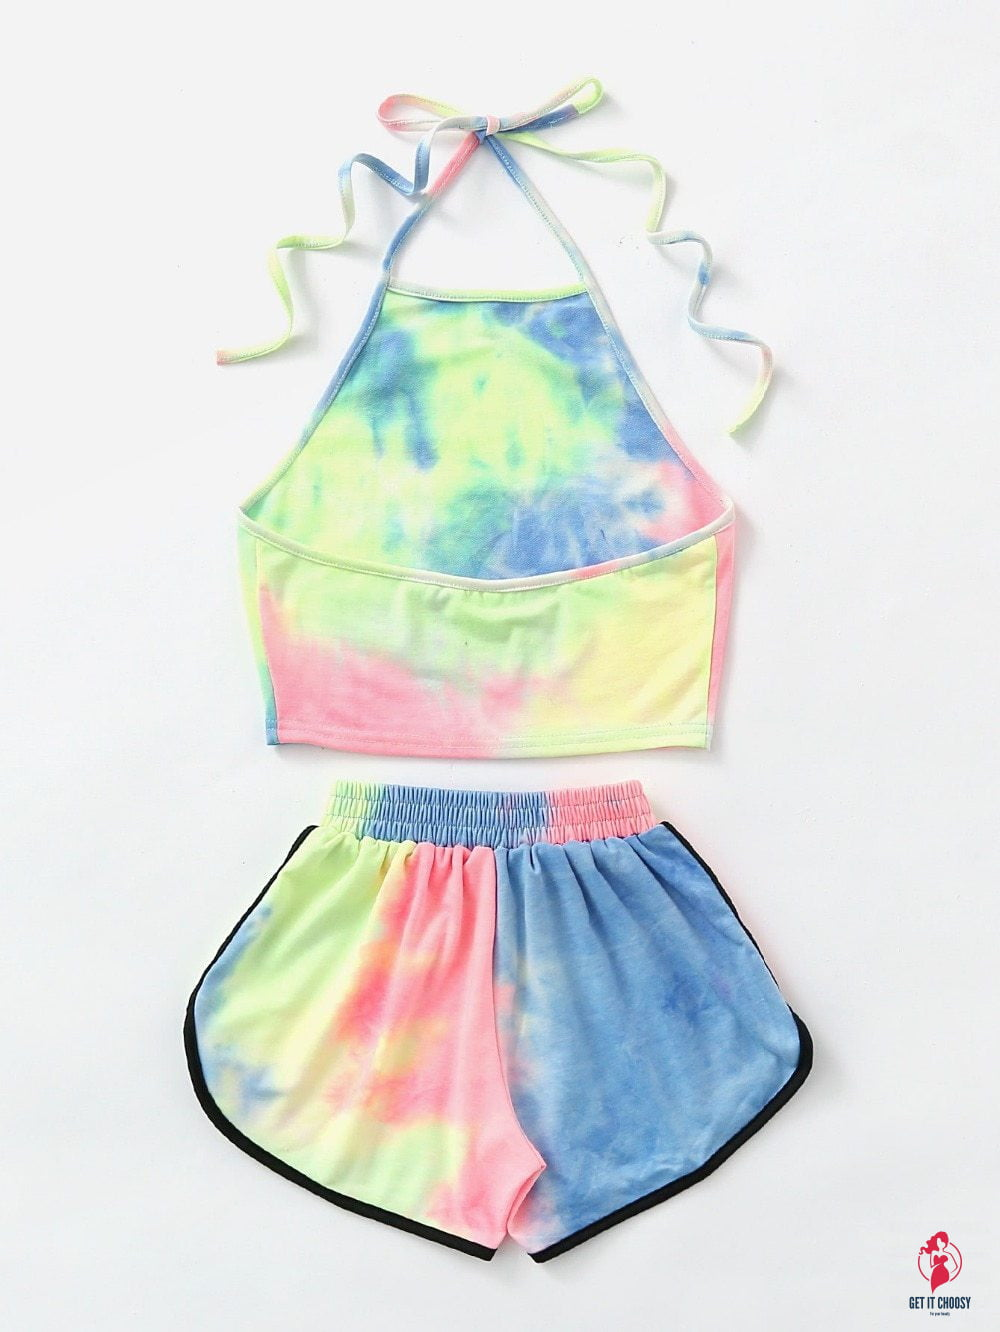 Tie-Dye Gradient Halter Crop Top and Shorts Two 2 piece set by Getitchoosy